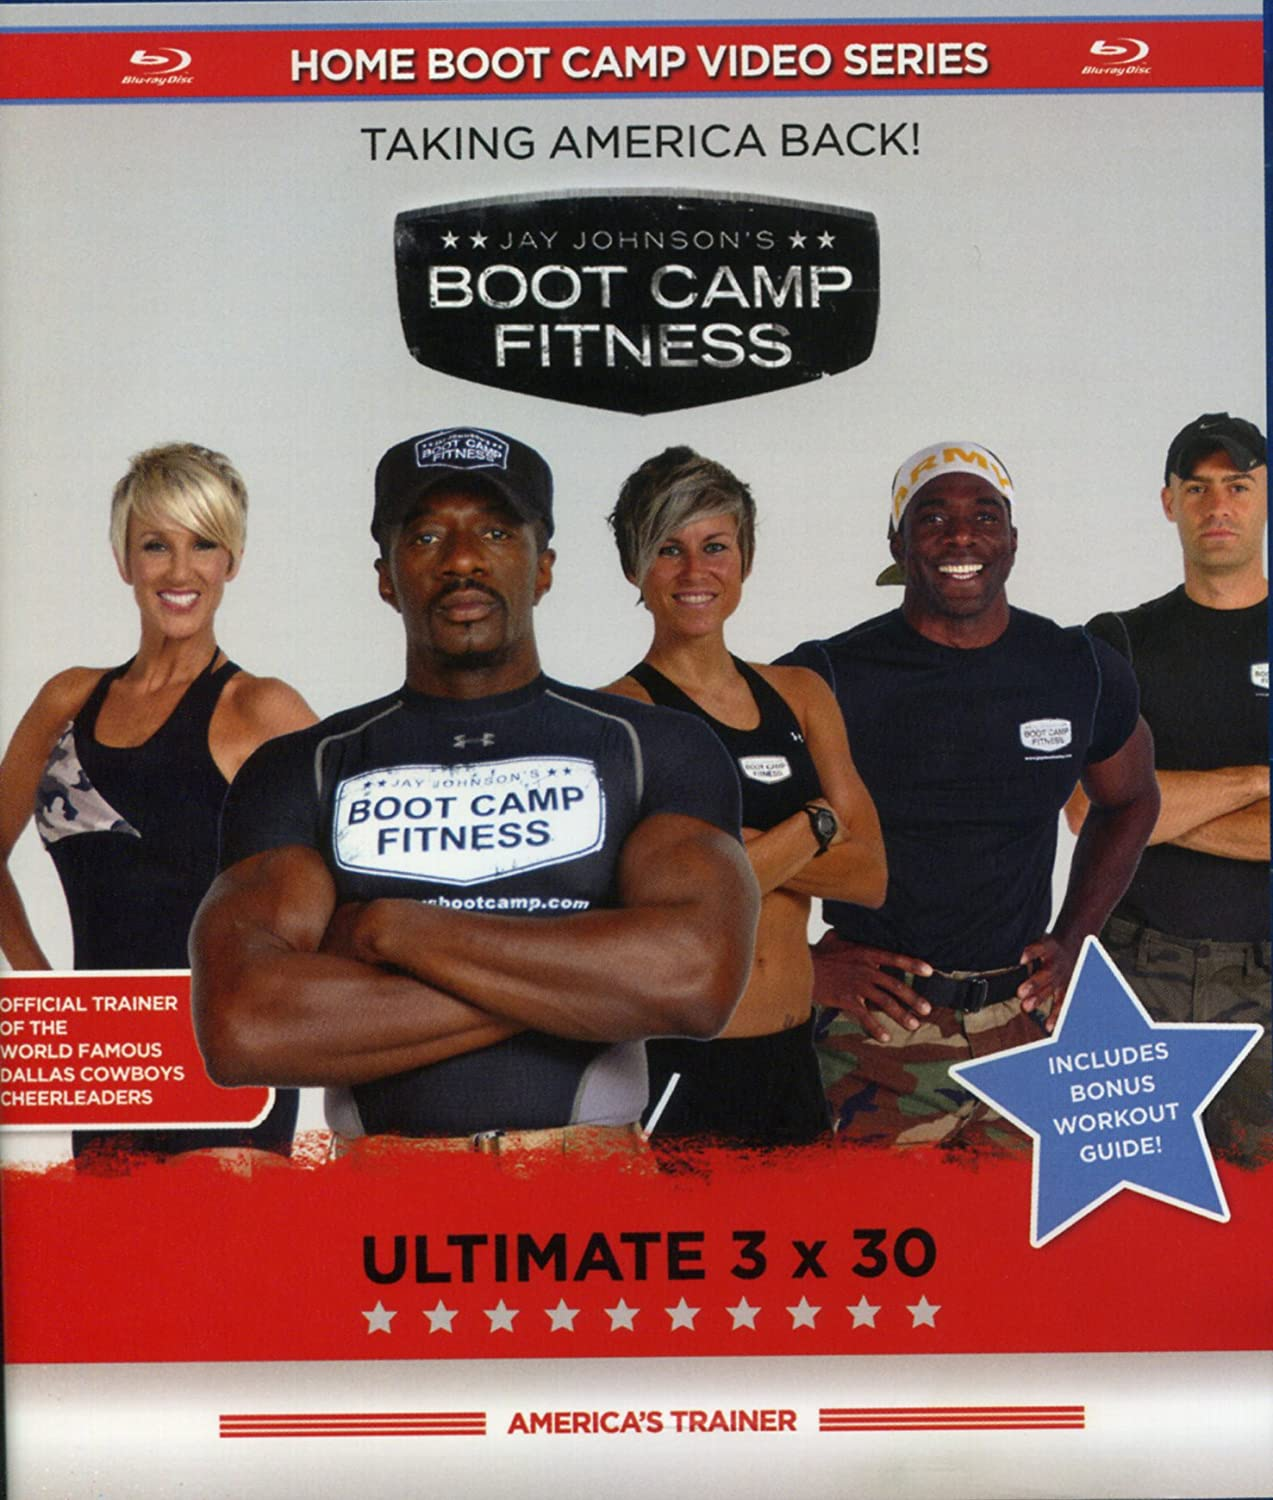 Jay Johnson's Boot Camp 3x30 Fitness: Ultimate Finally 70% OFF Outlet popular brand